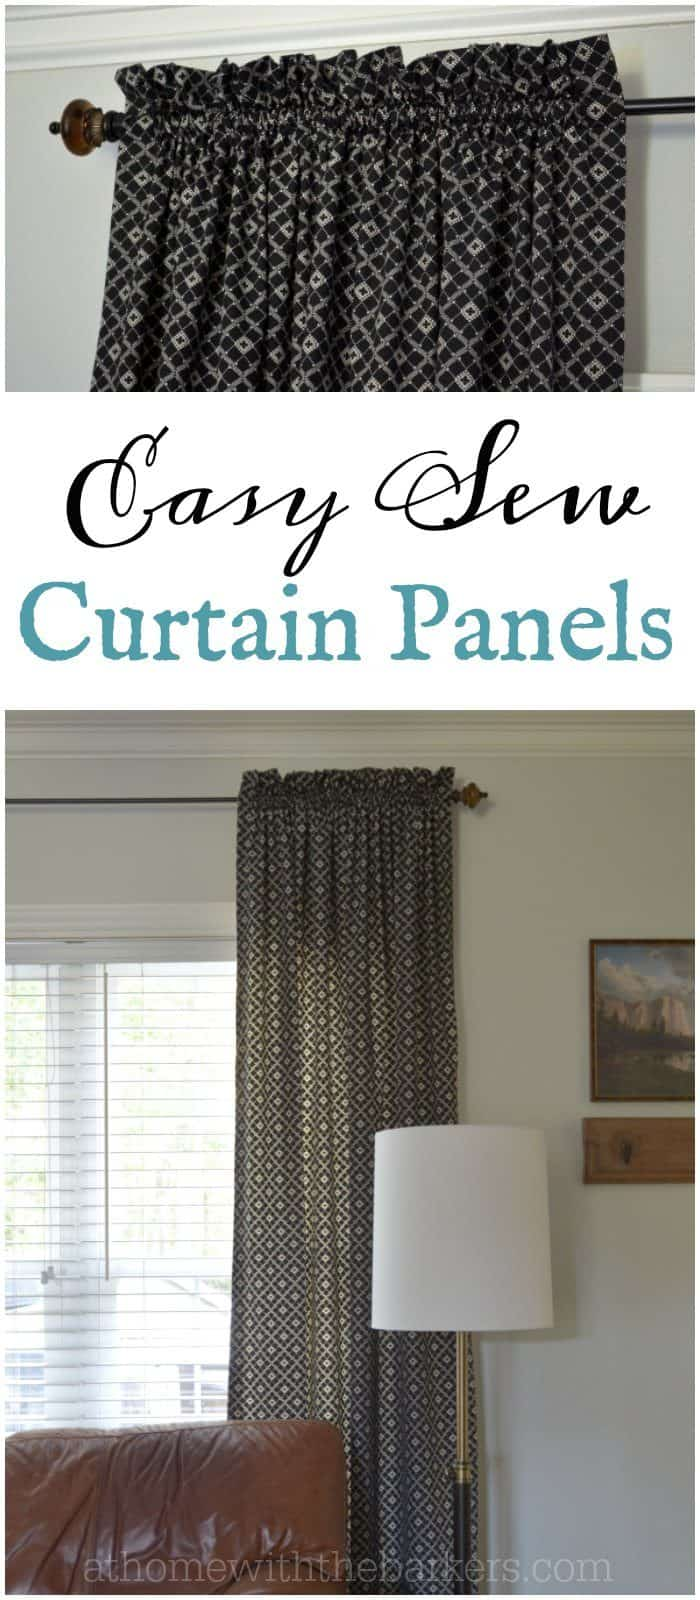 Learning to sew has saved me lots of money through the years. Click to see these easy sew curtain panels.